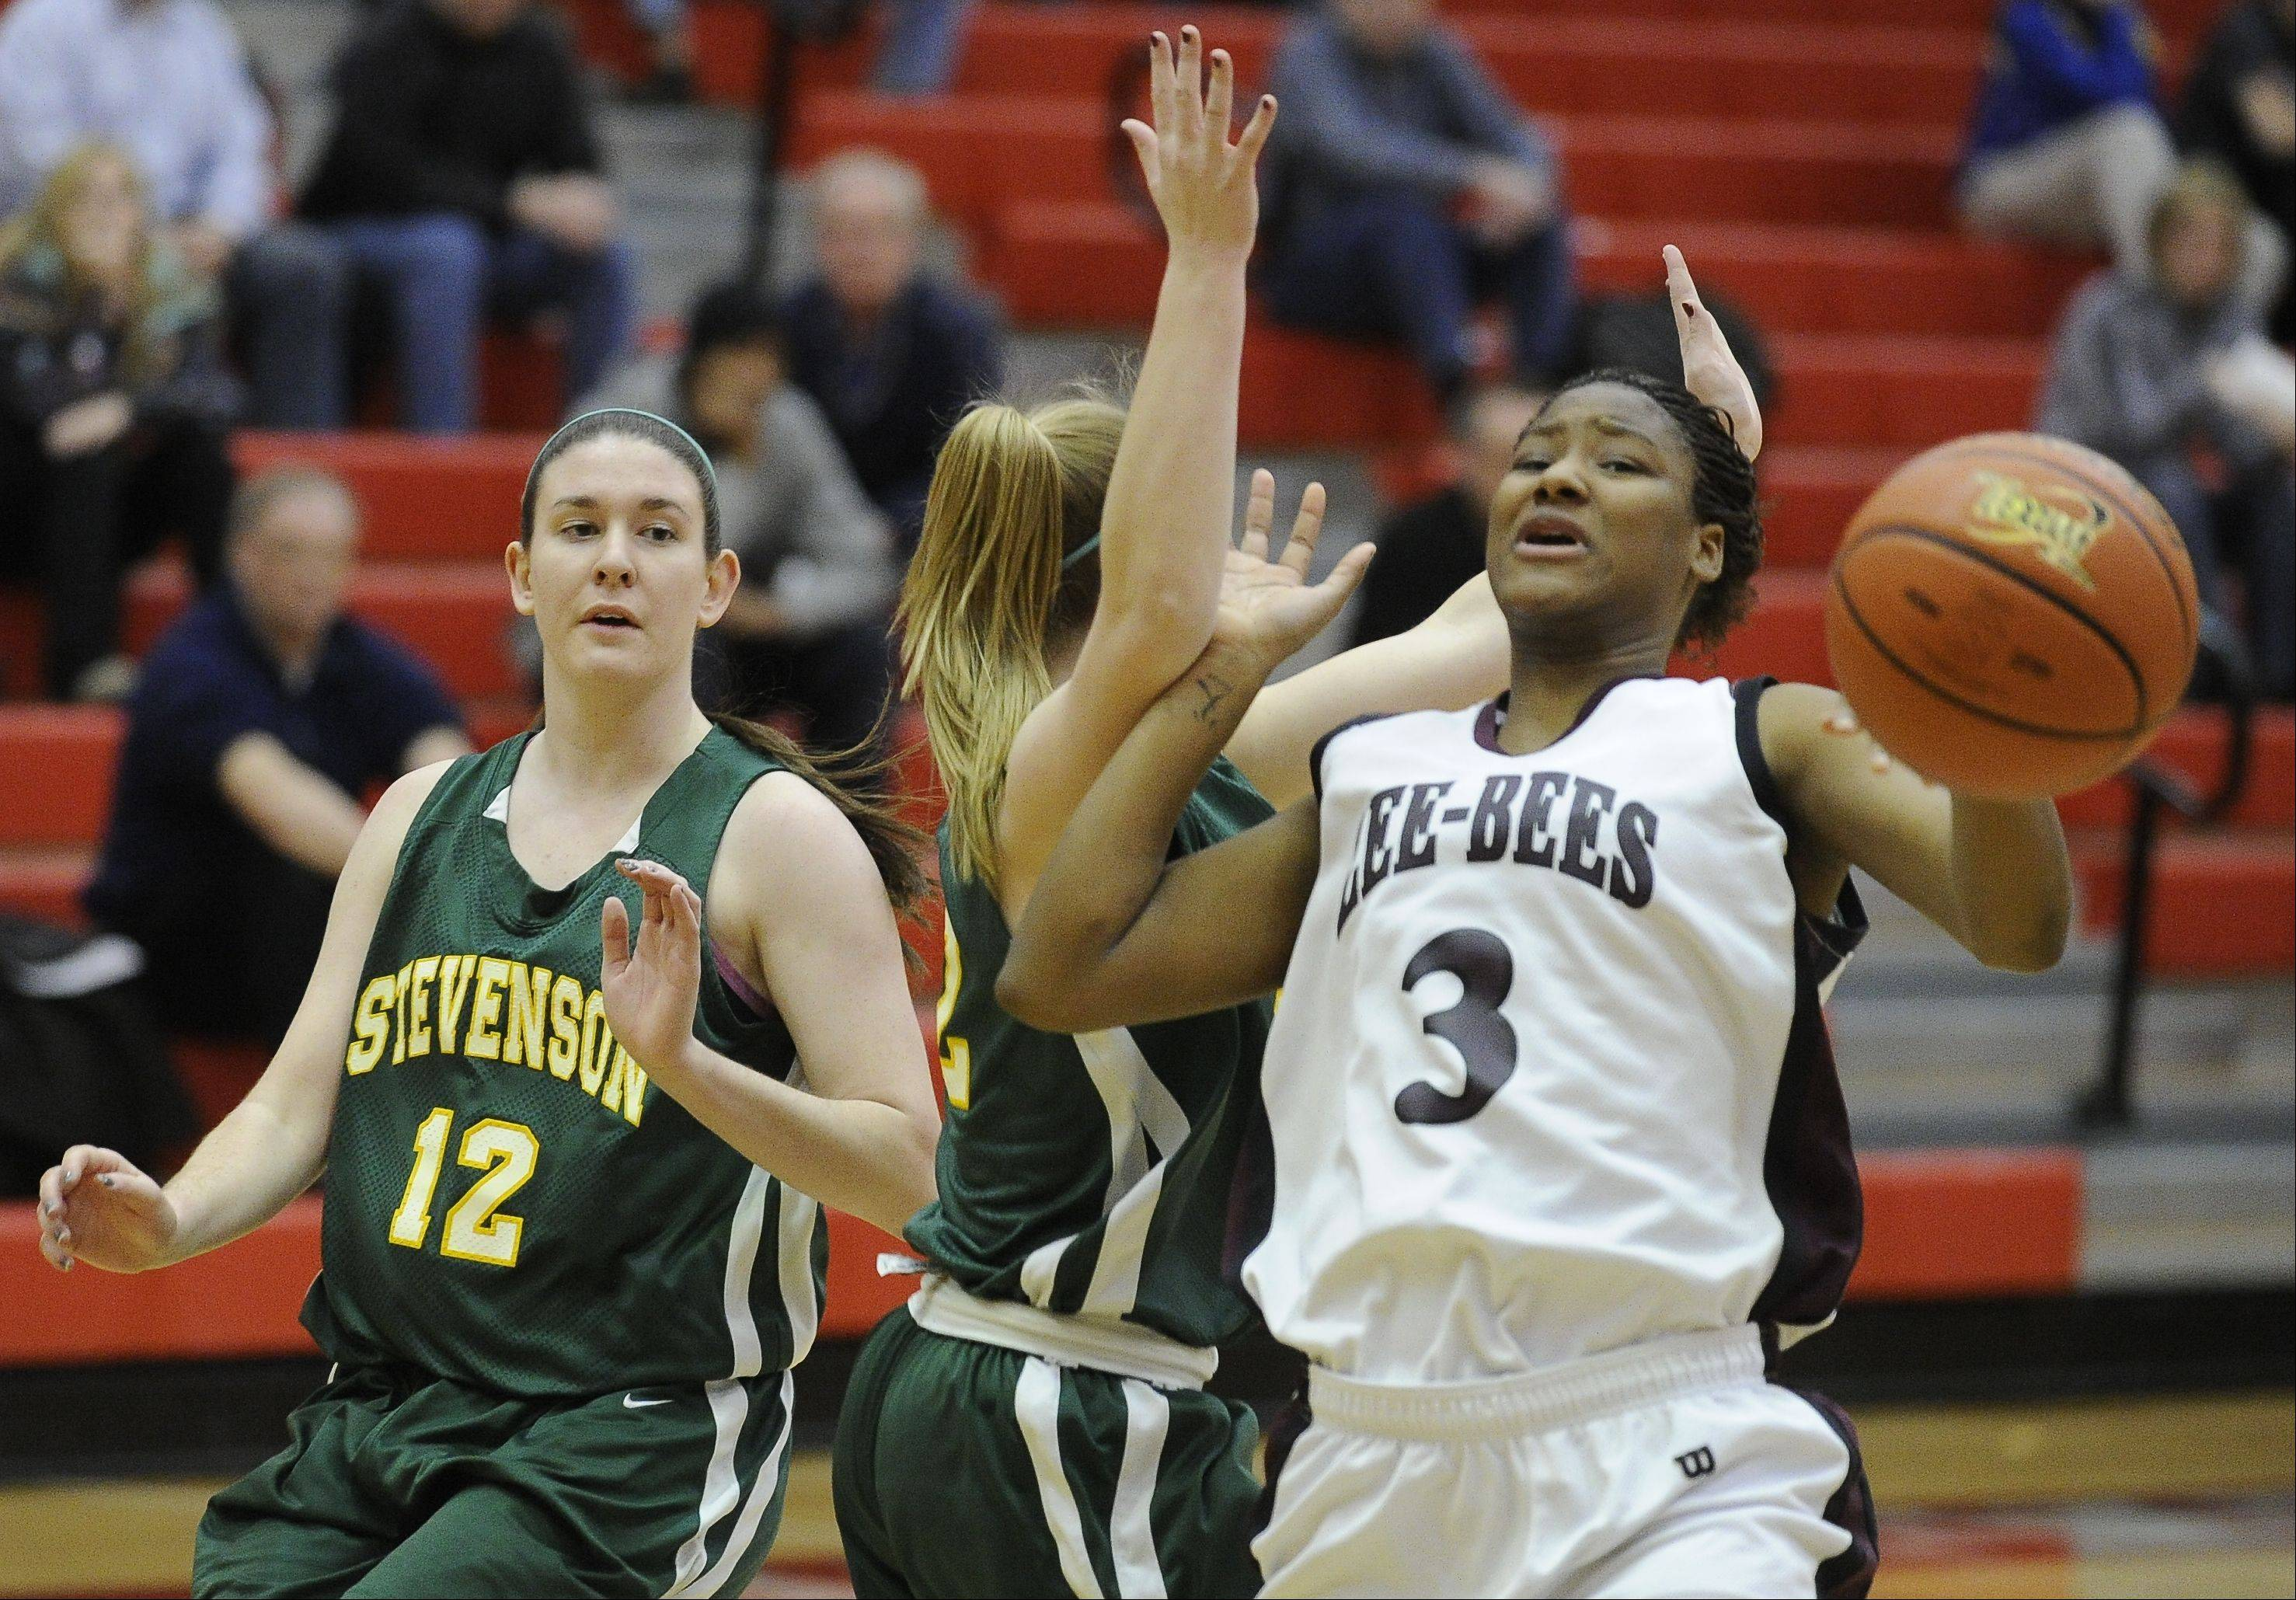 Images from the Zion-Benton vs. Stevenson girls sectional semifinal basketball game in Palatine on Monday, Feb. 20 , 2012.